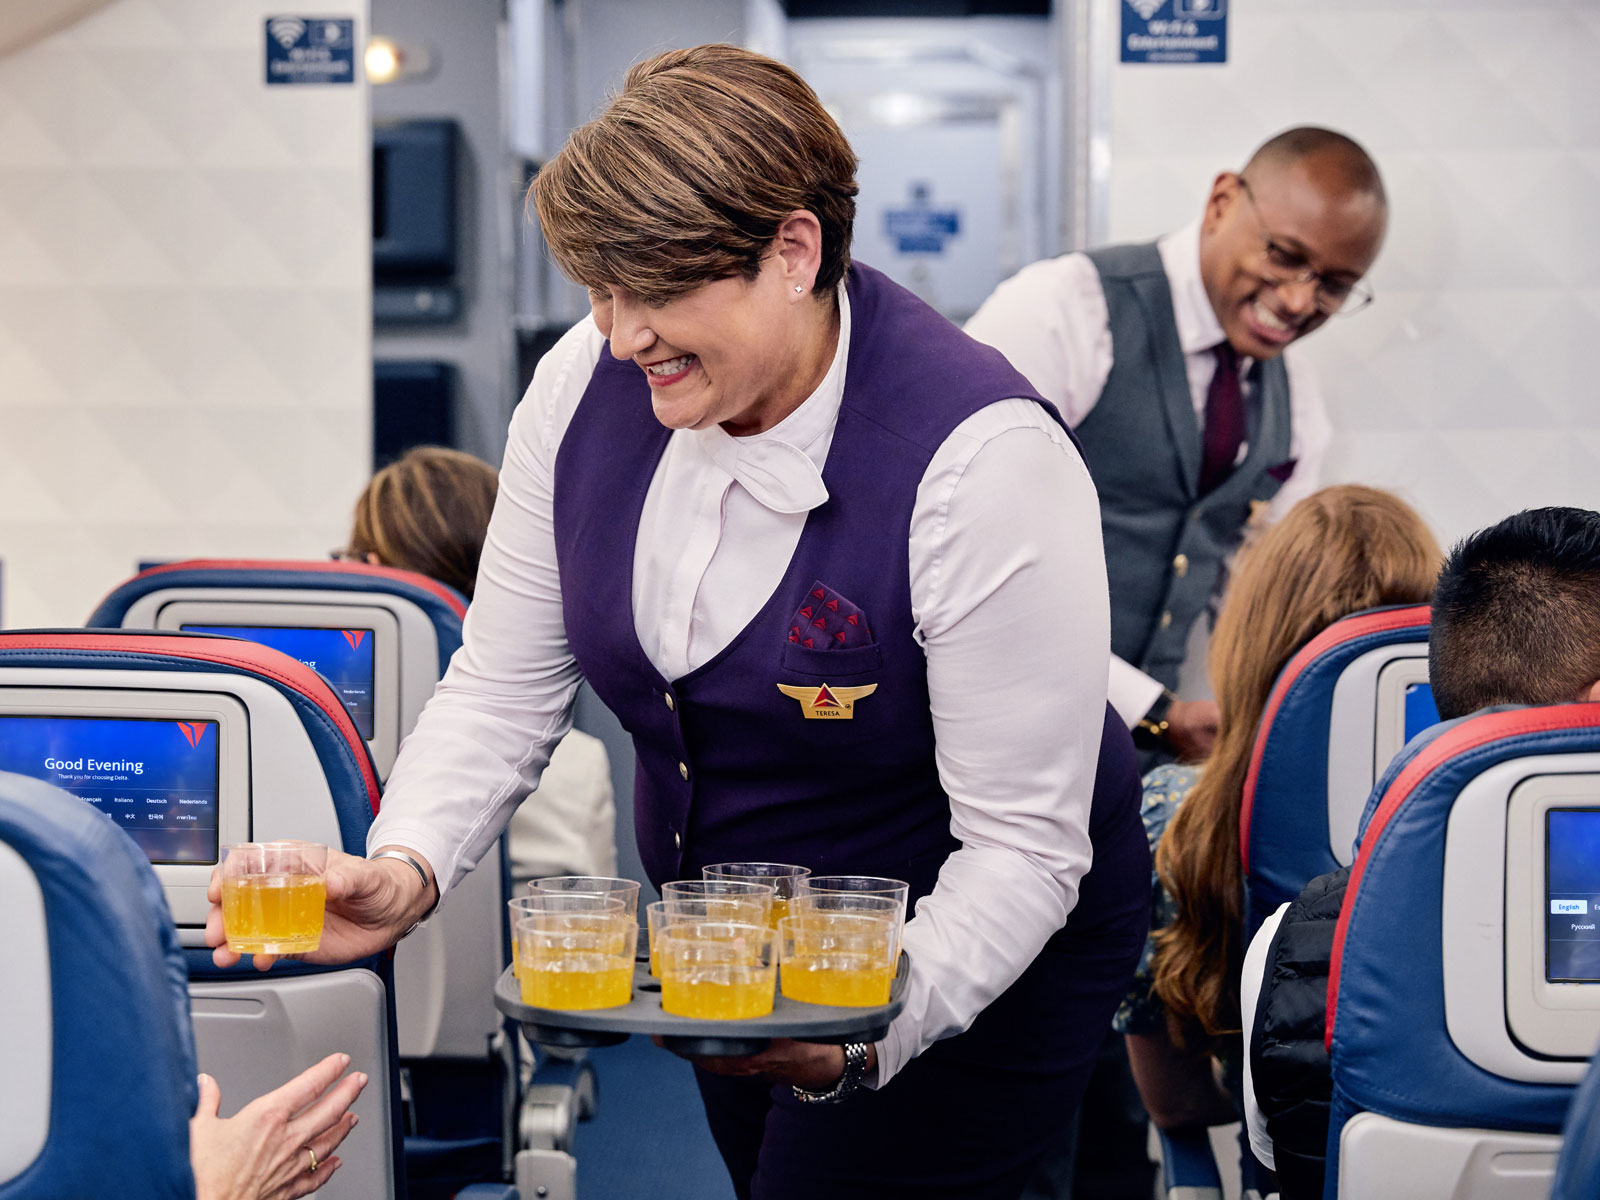 Delta Main Cabin Flyers Will Soon Get Free Bellinis on International Flights